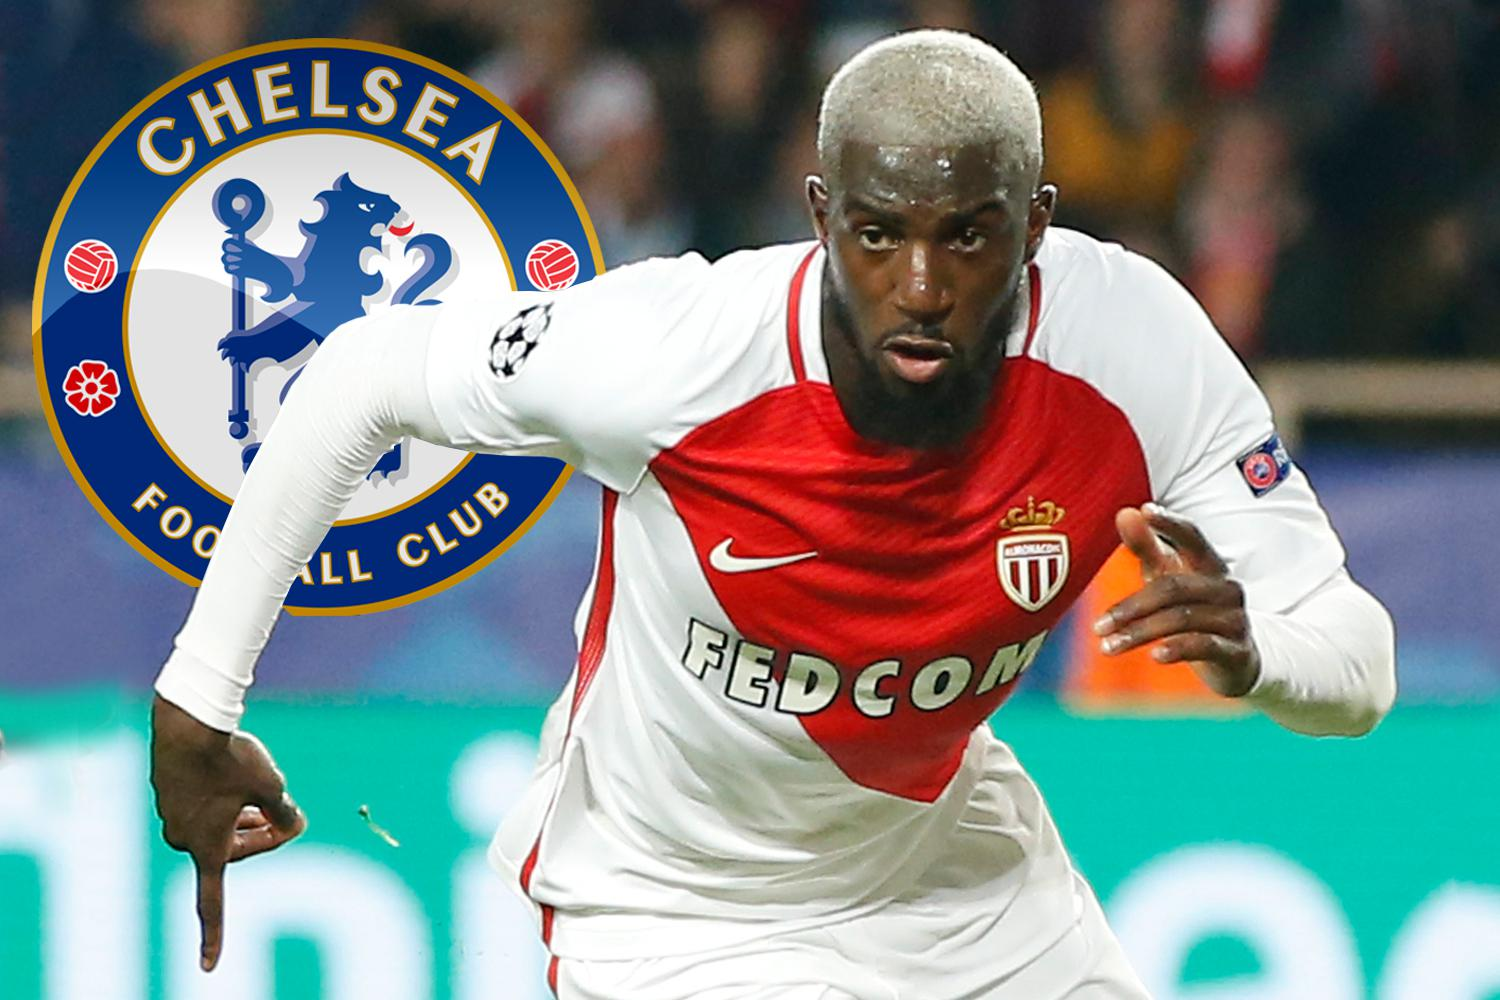 Chelsea agree £35m fee with Monaco for midfield star Tiemoue